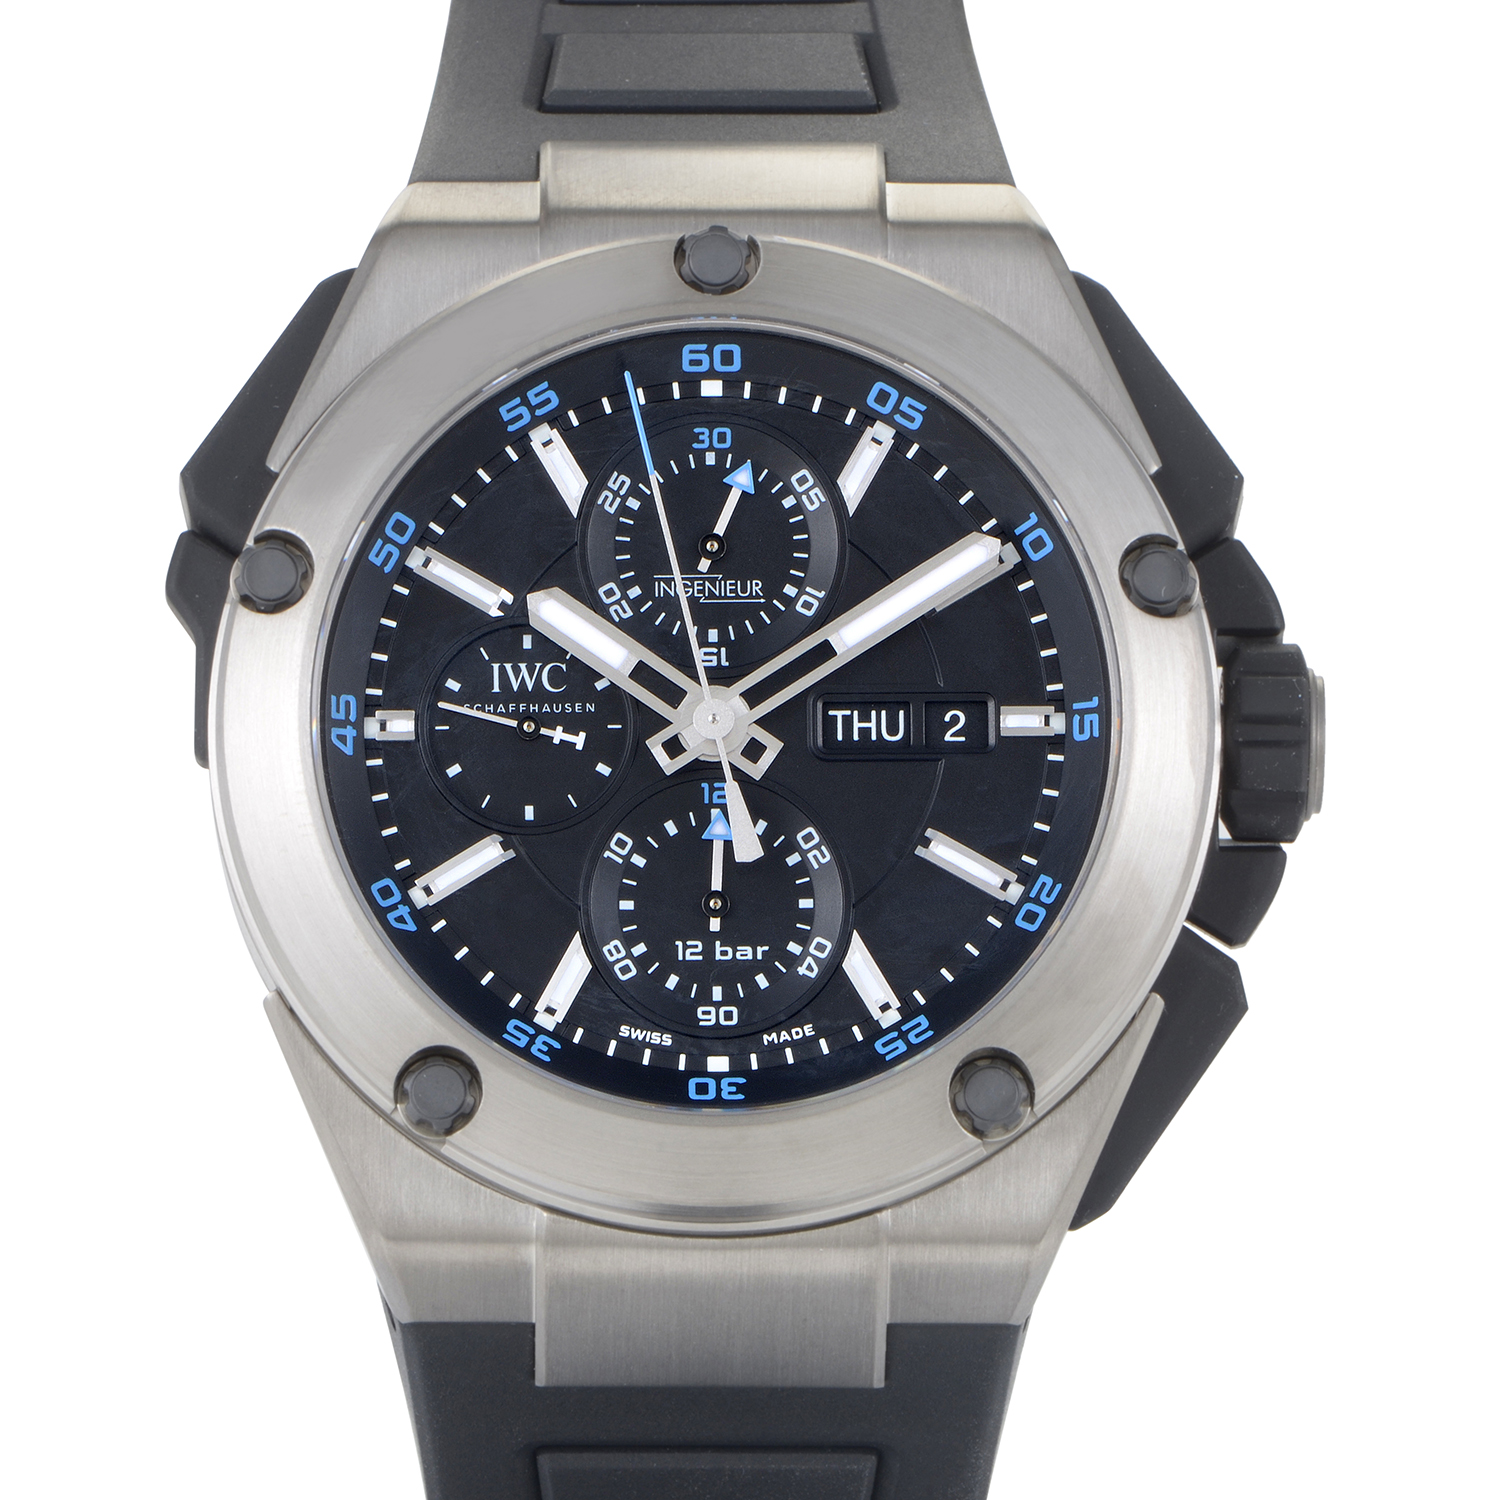 Ingenieur Double Chronograph Men's Automatic Watch IW386503